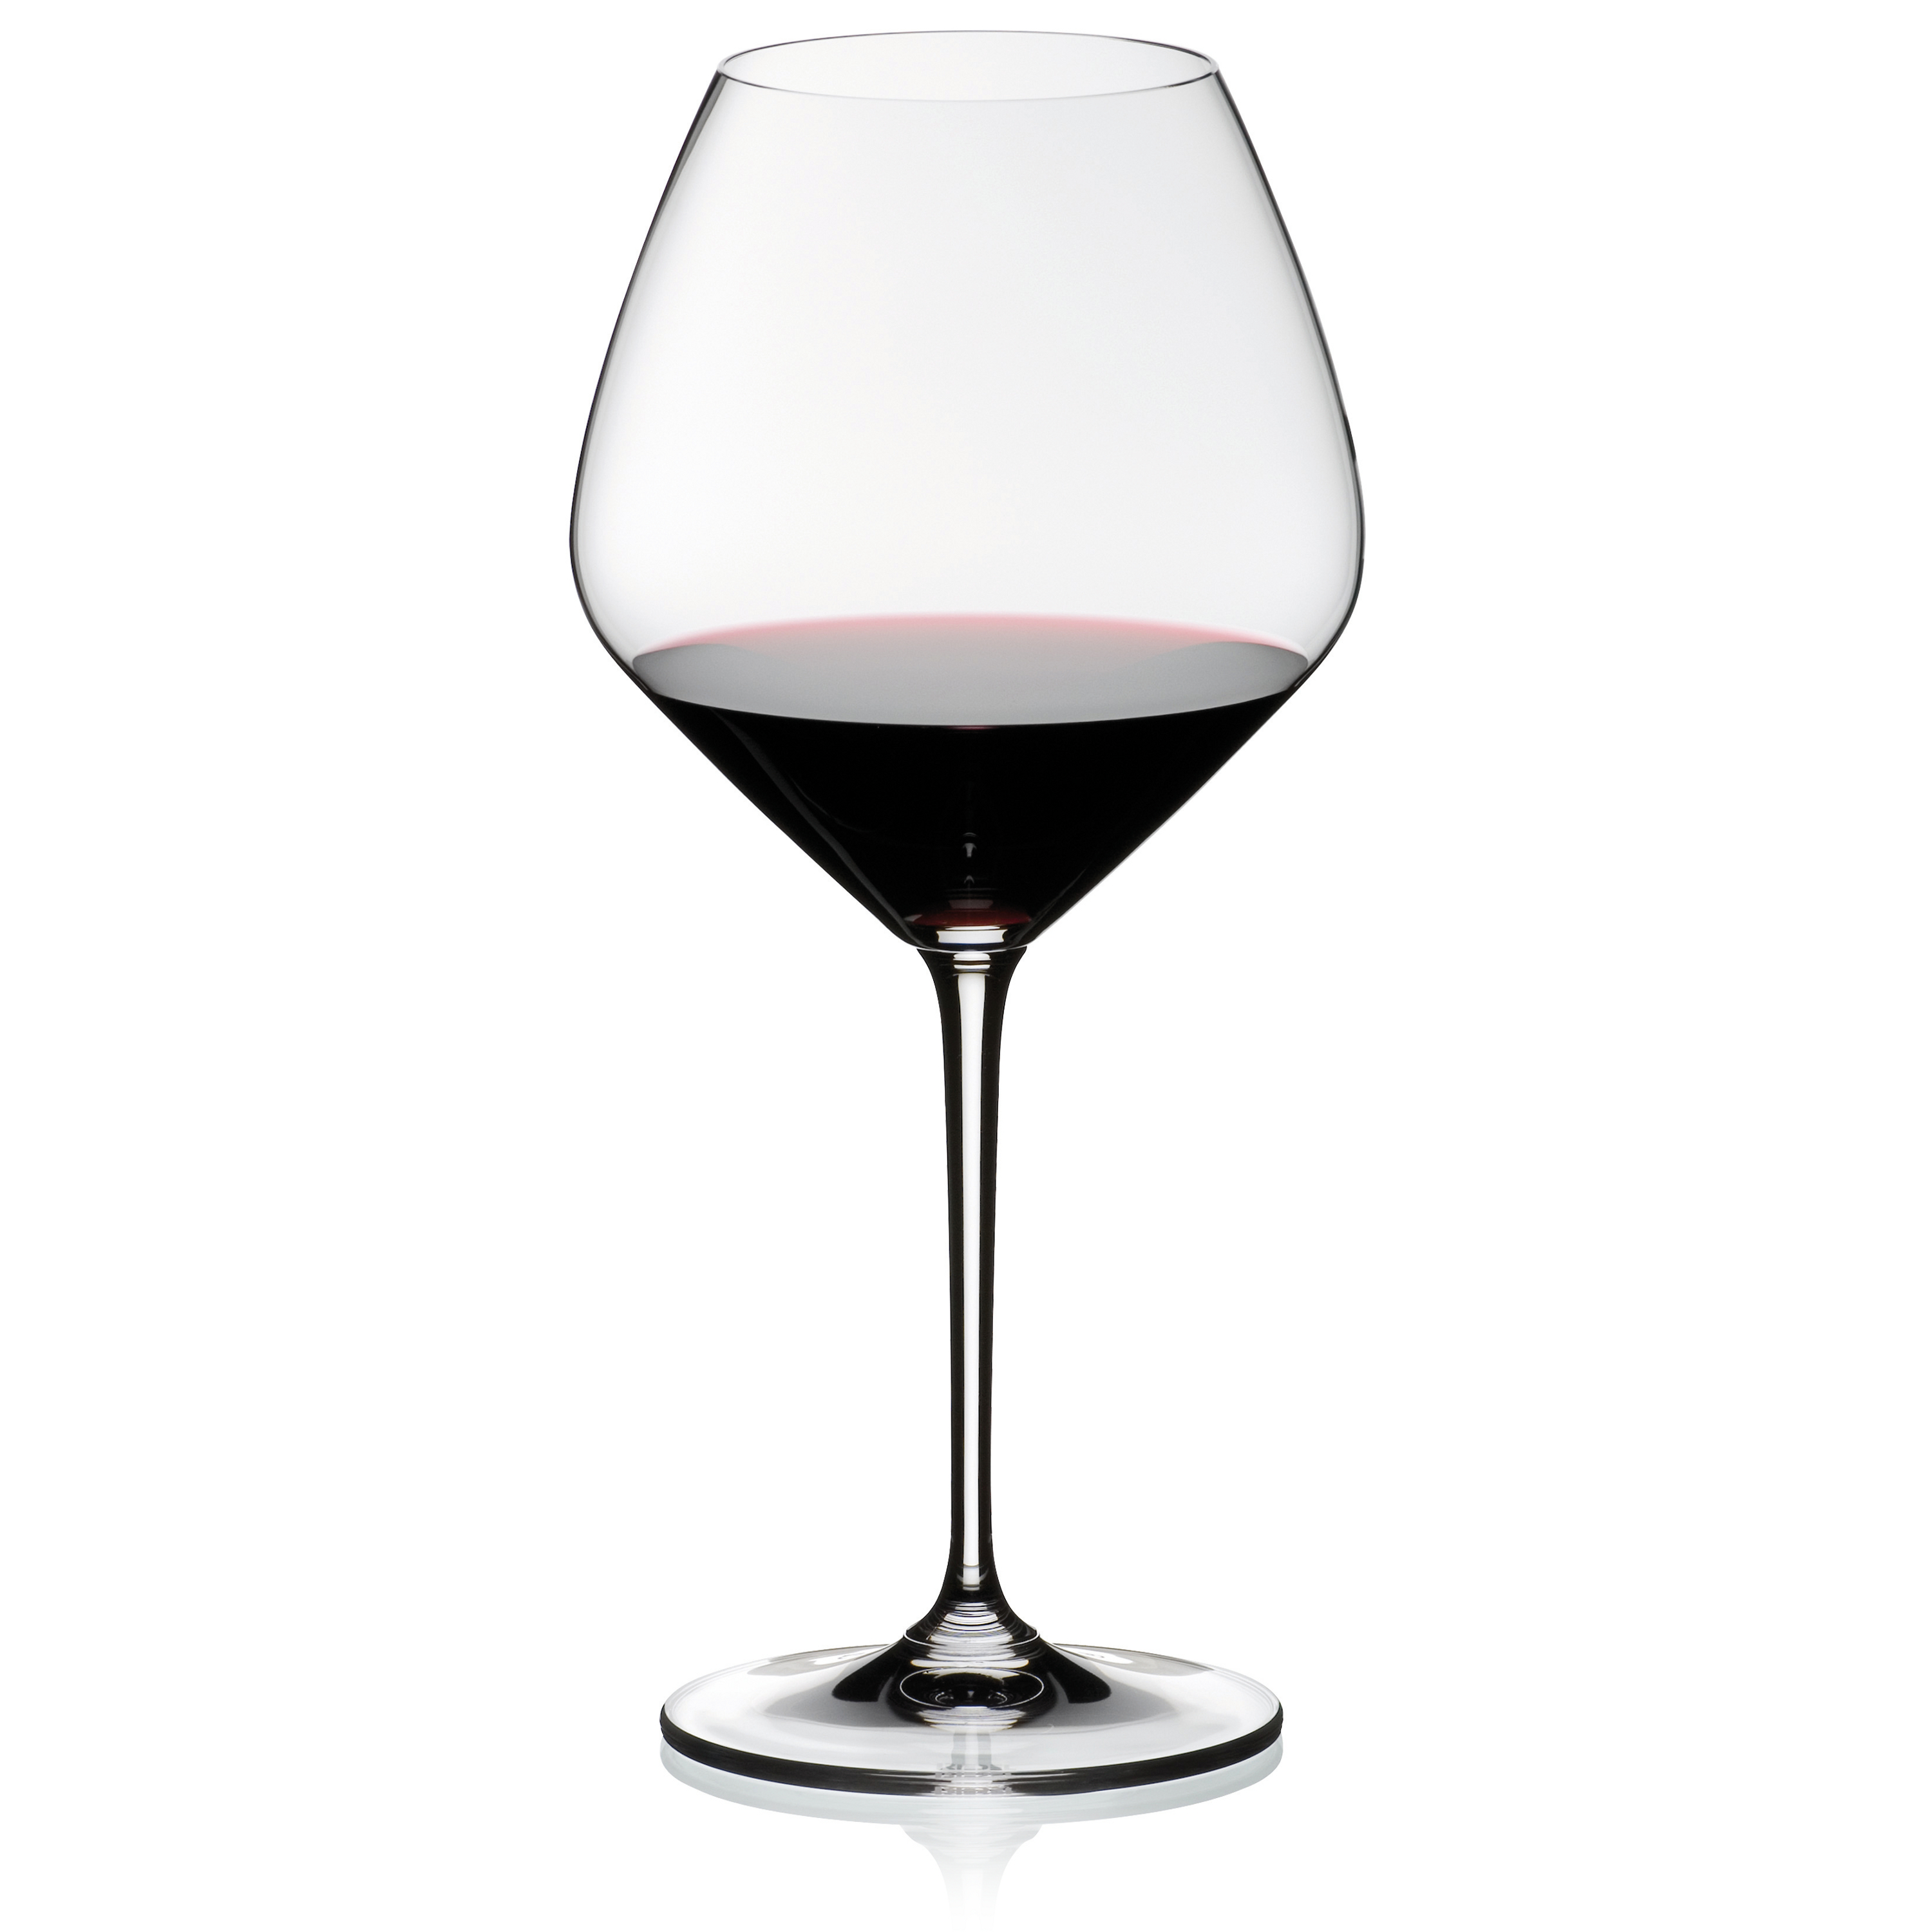 Riedel Vinum Extreme Pinot Noir Wine Glass, Set of 2